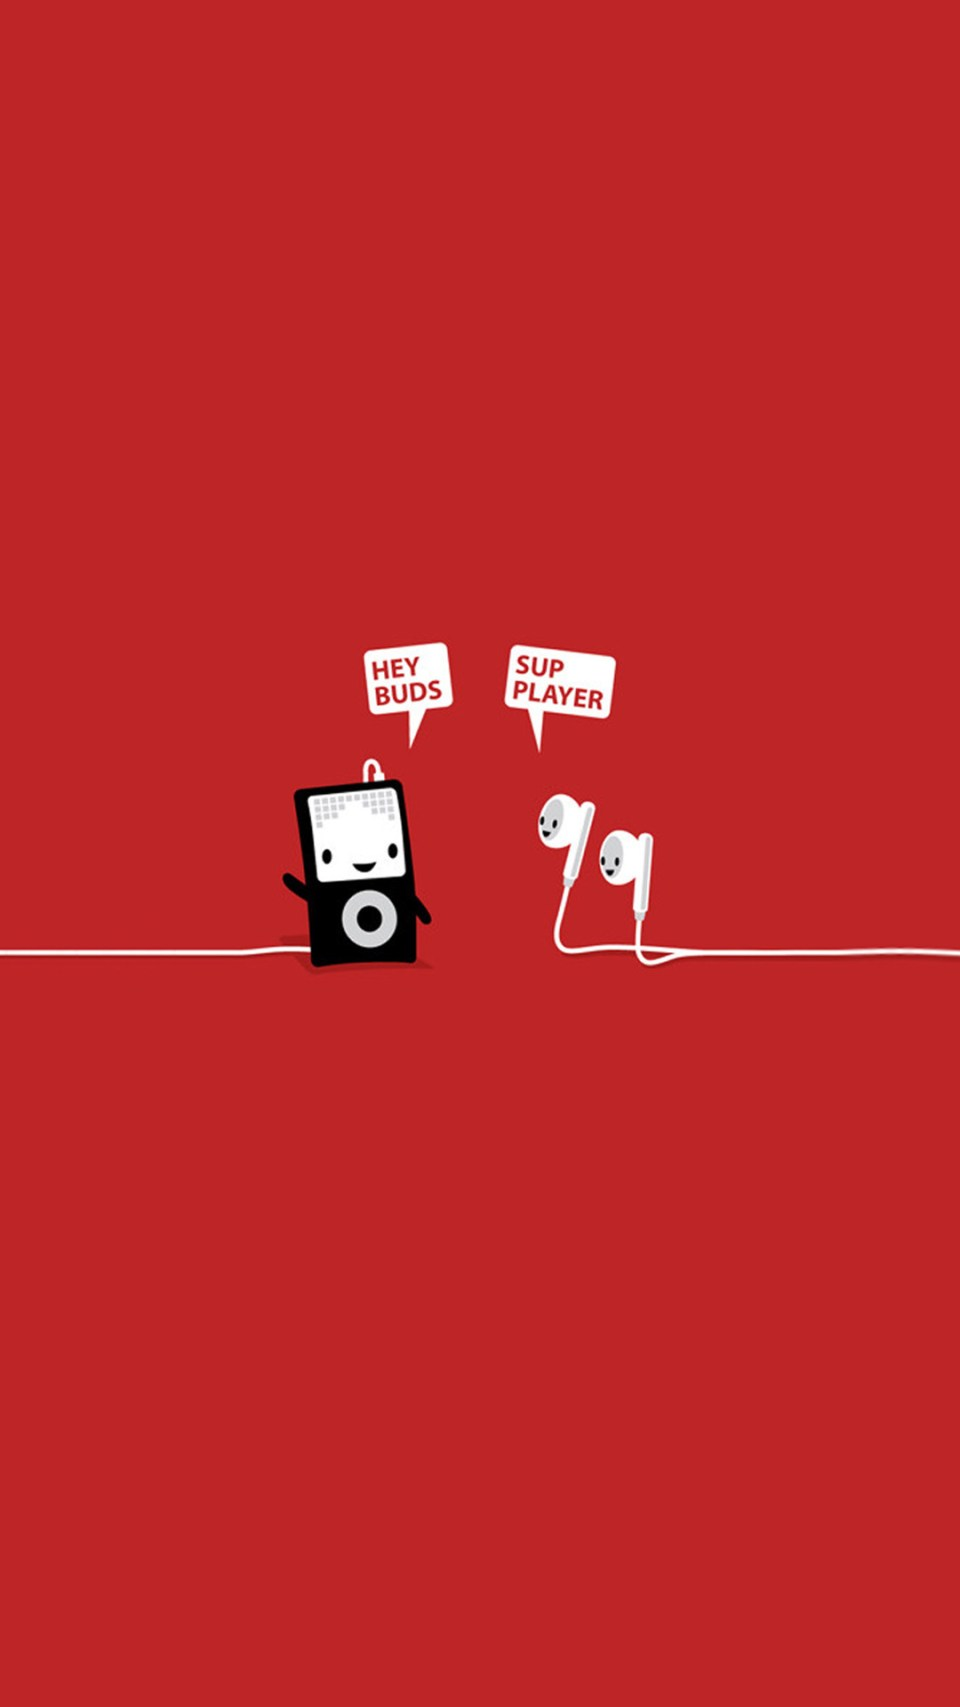 Funny Phone Wallpapers 68 Images